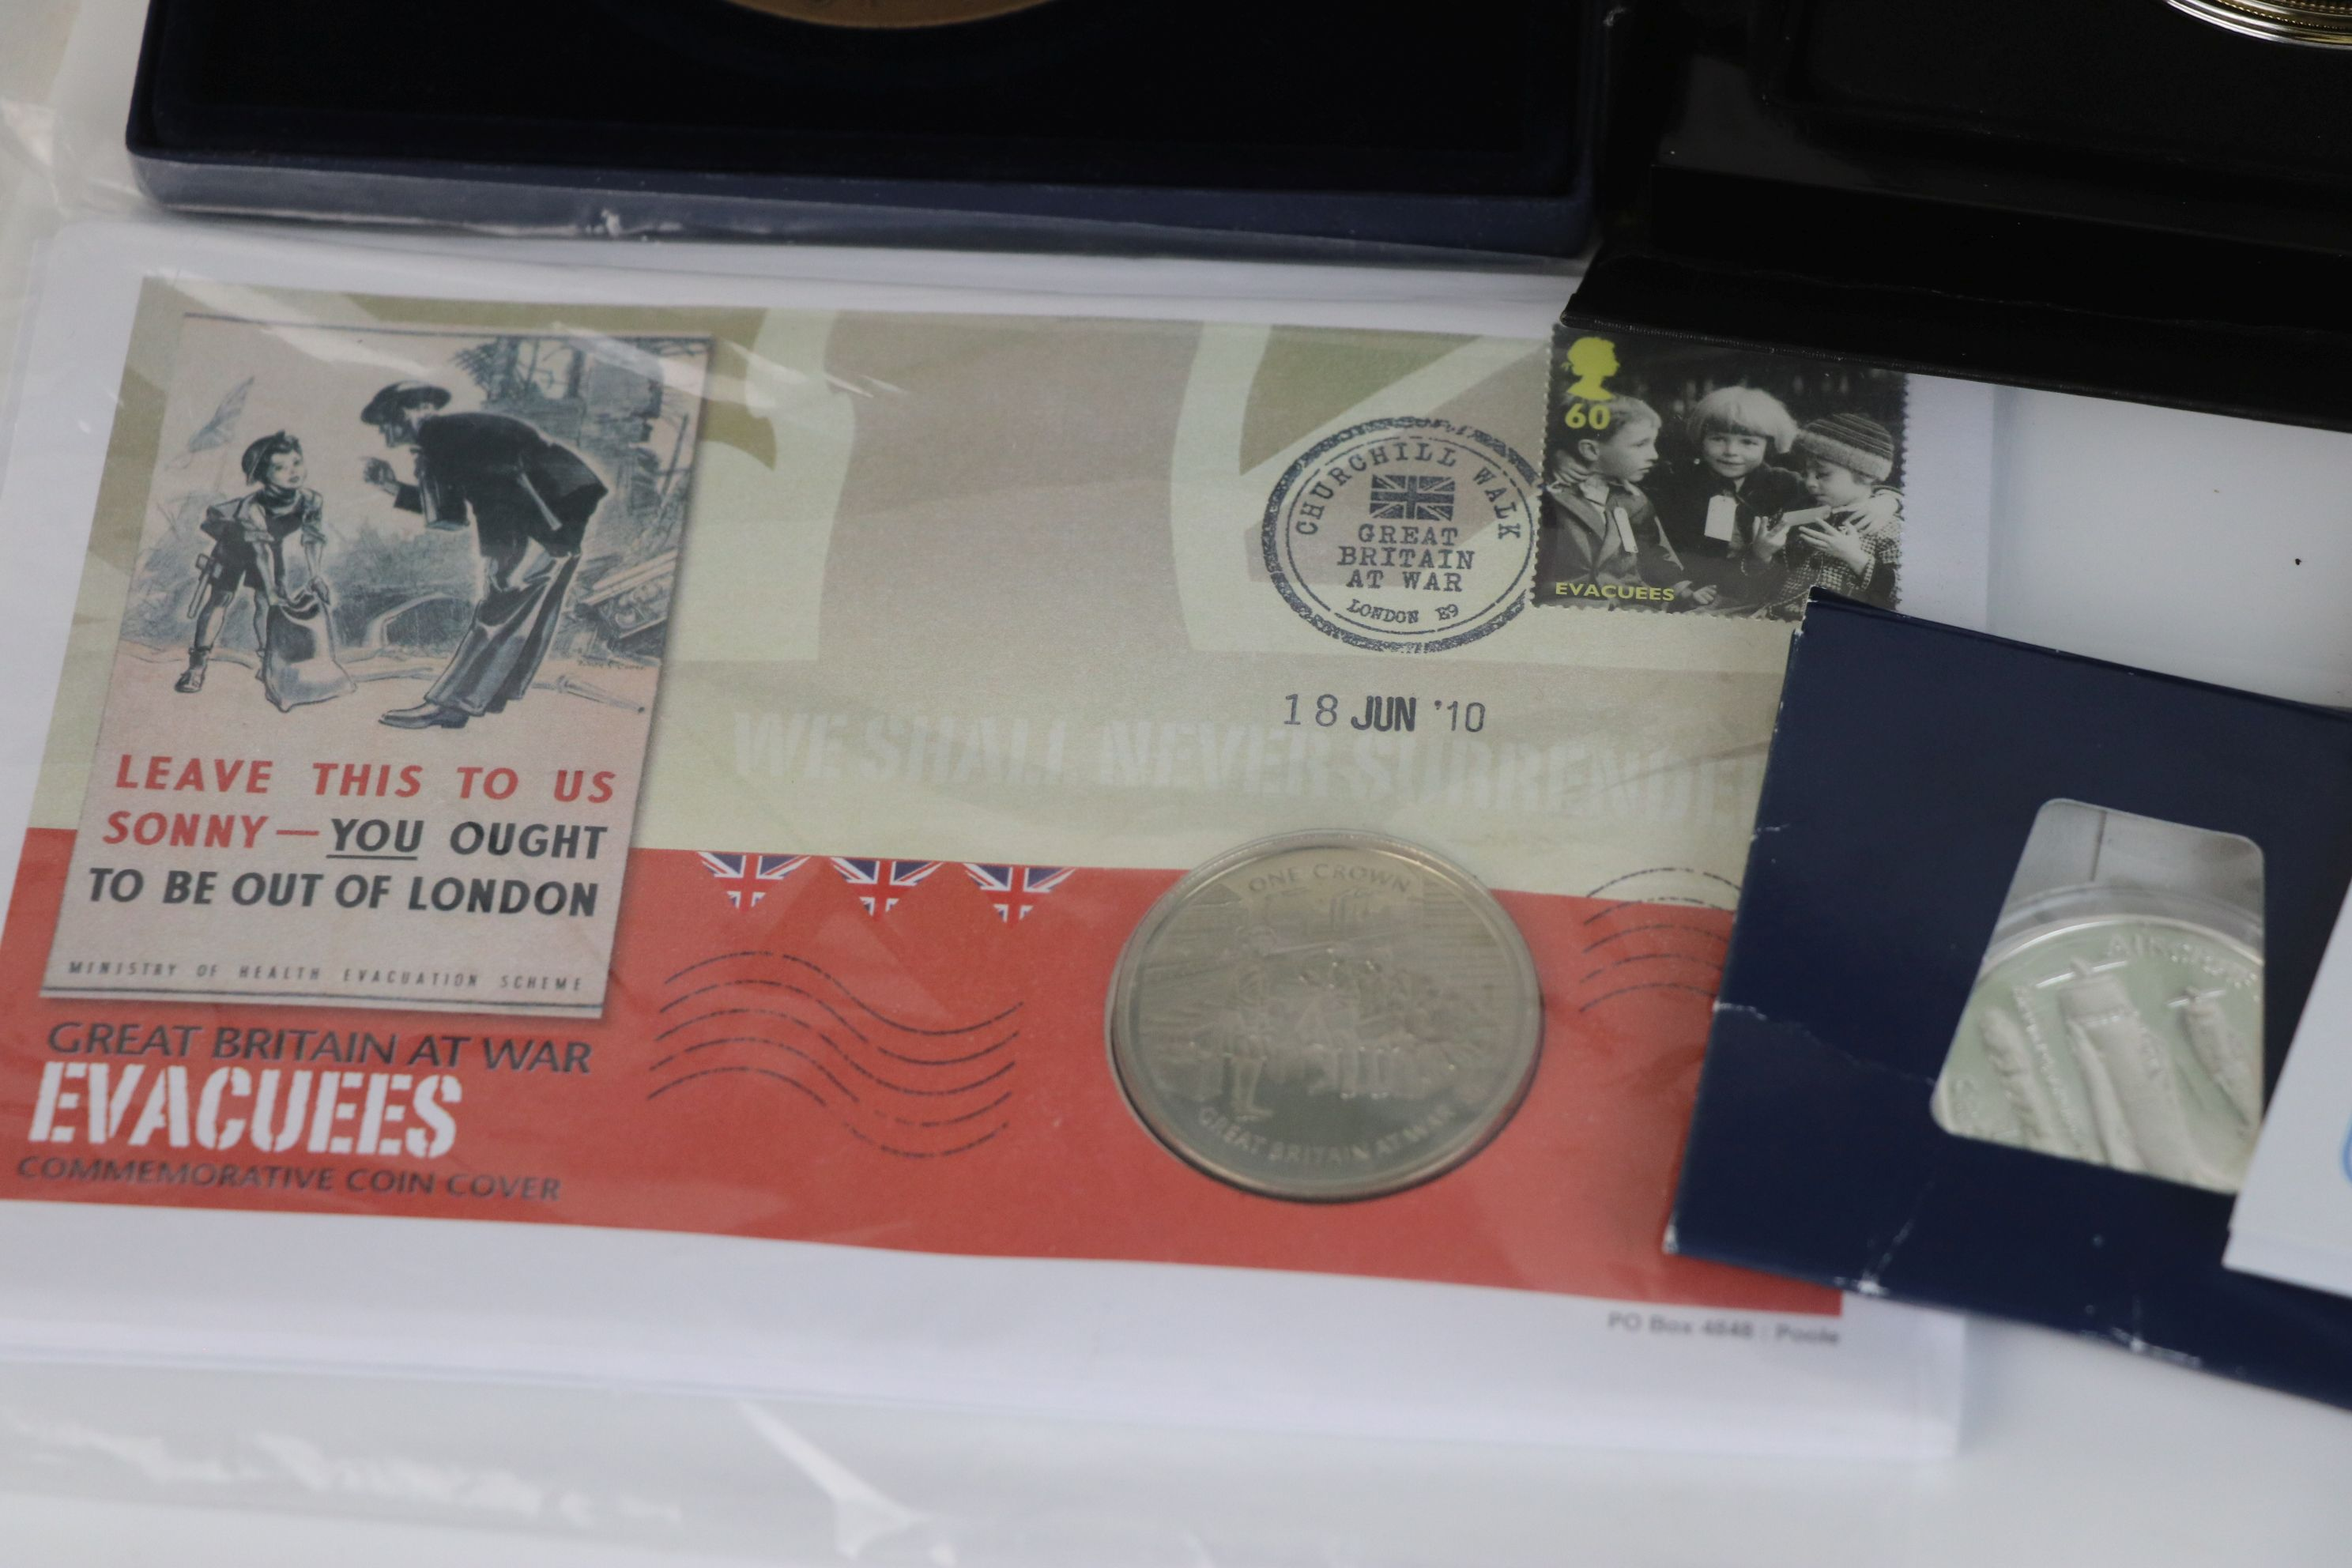 A collection of commemorative coins and medallions to include Battle of Britain Five crown coin, - Image 7 of 7